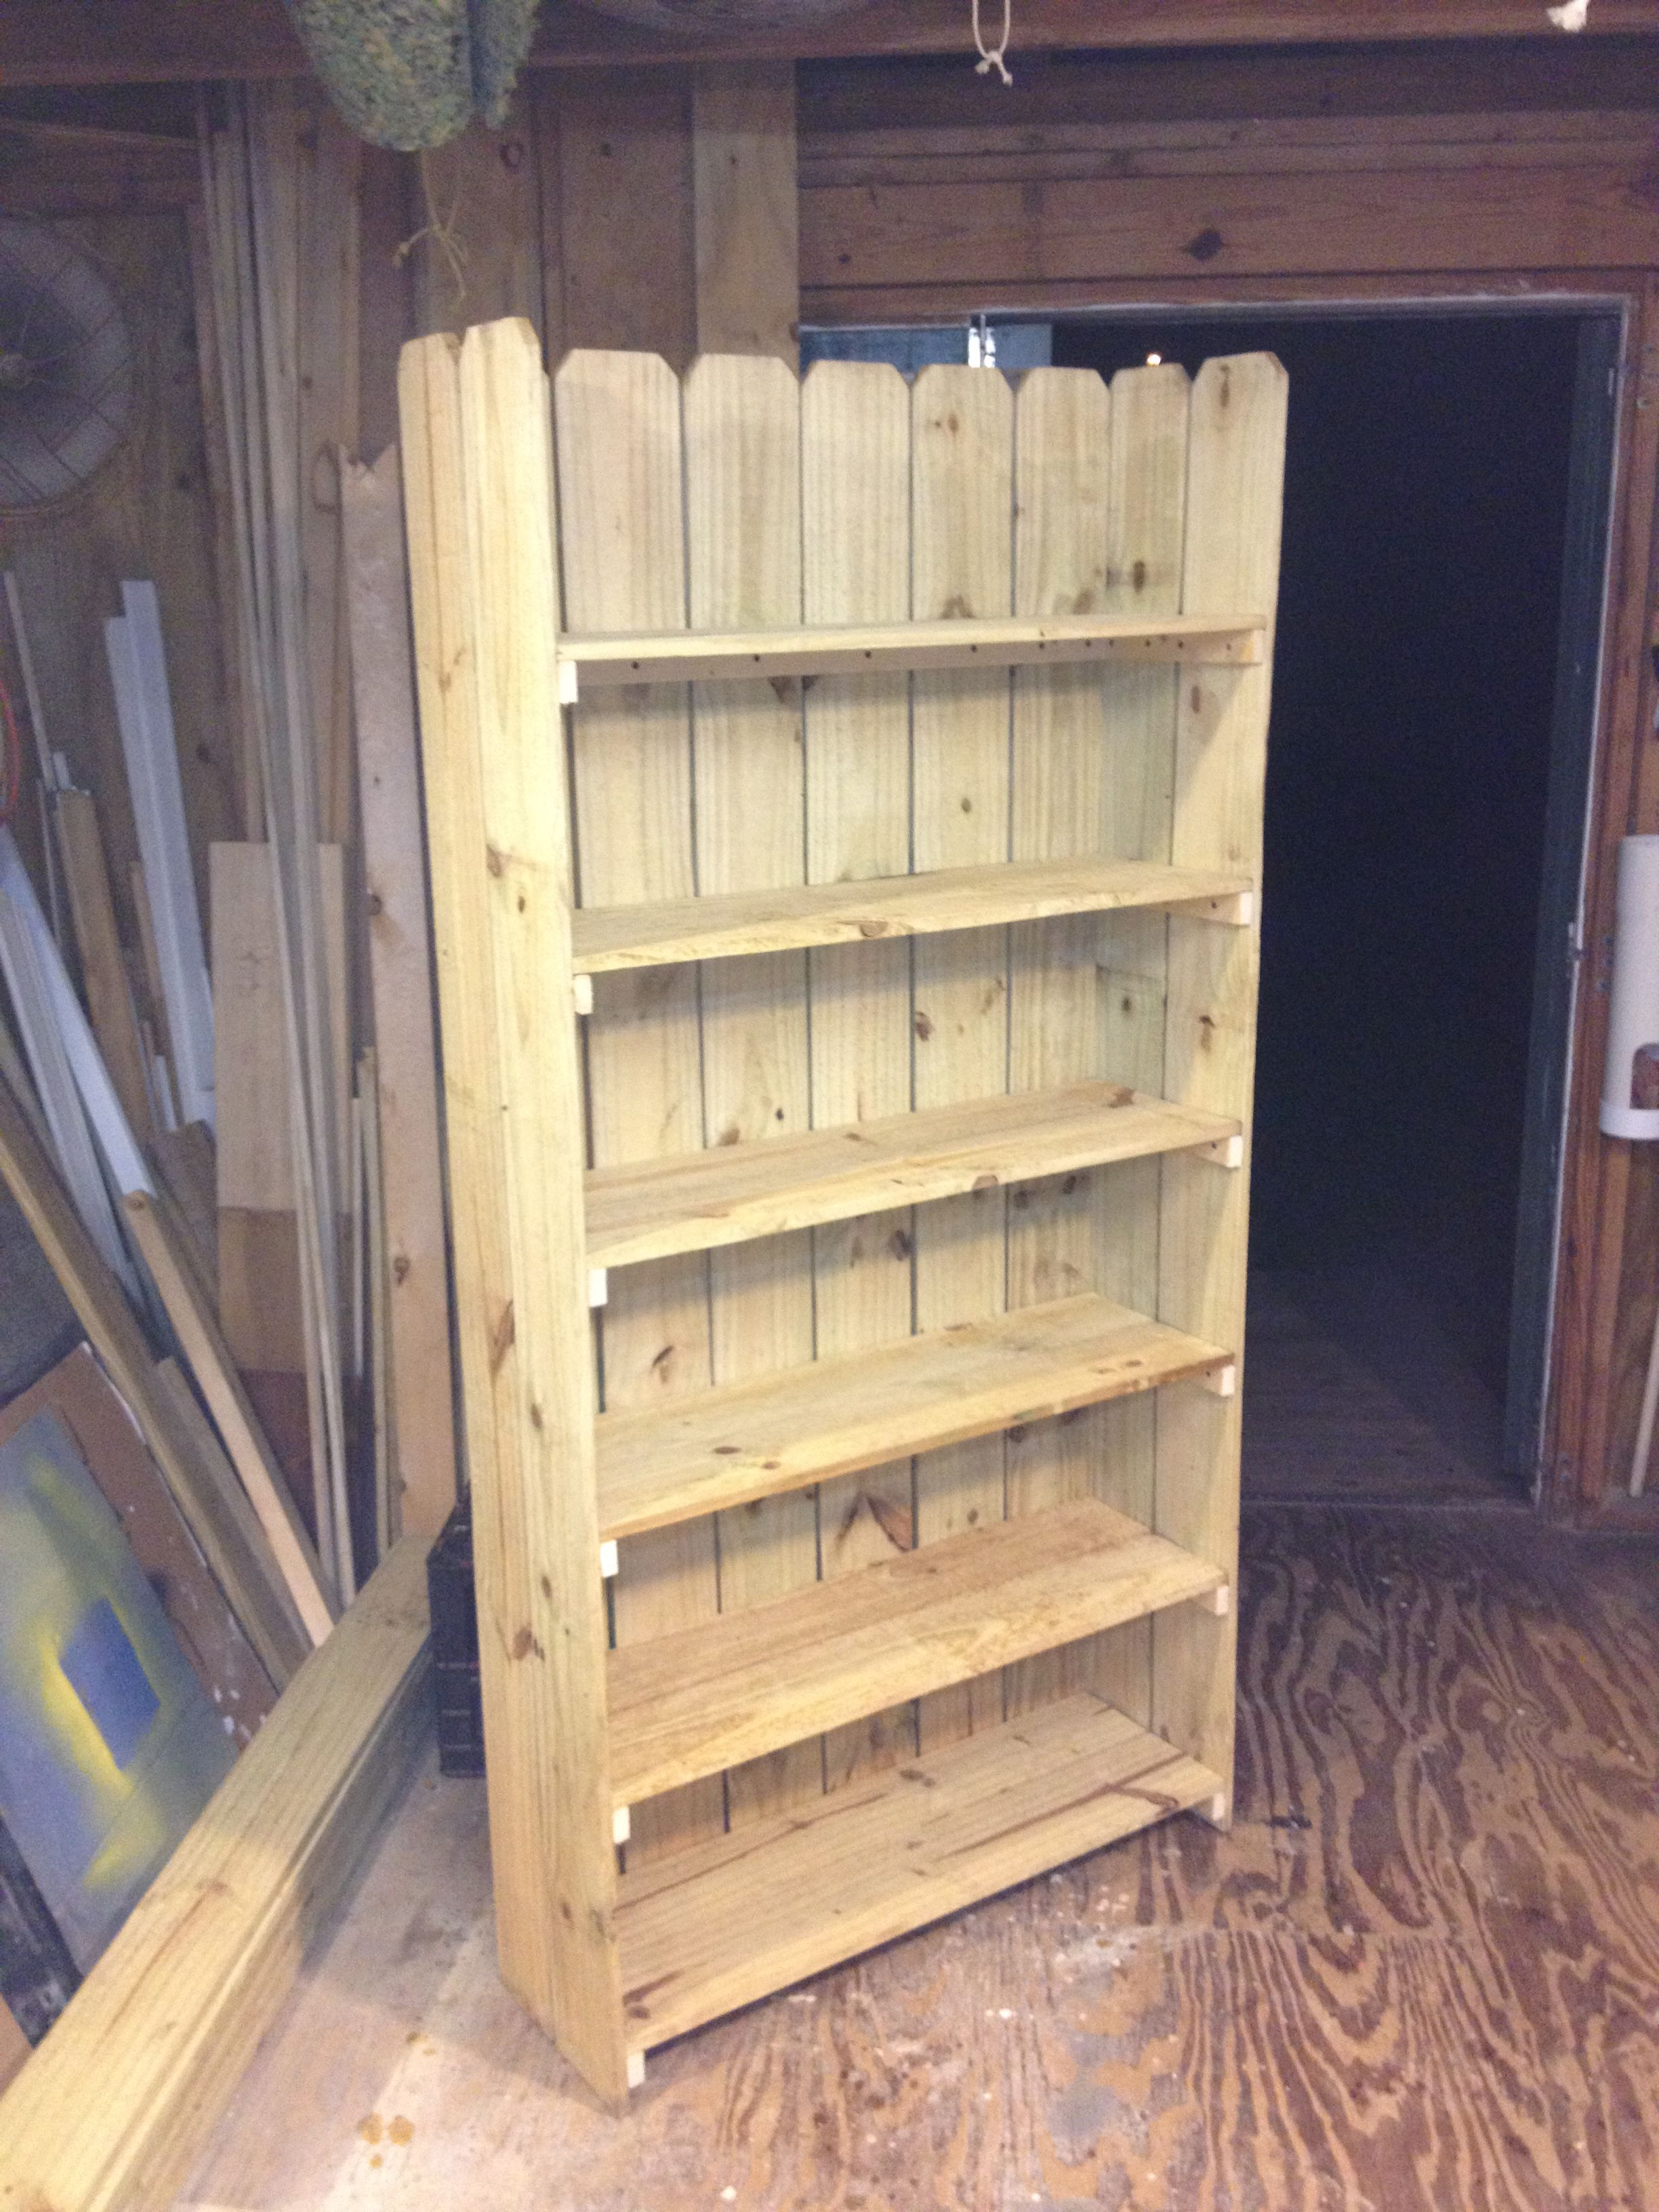 Bookshelf made from leftover fence boards and